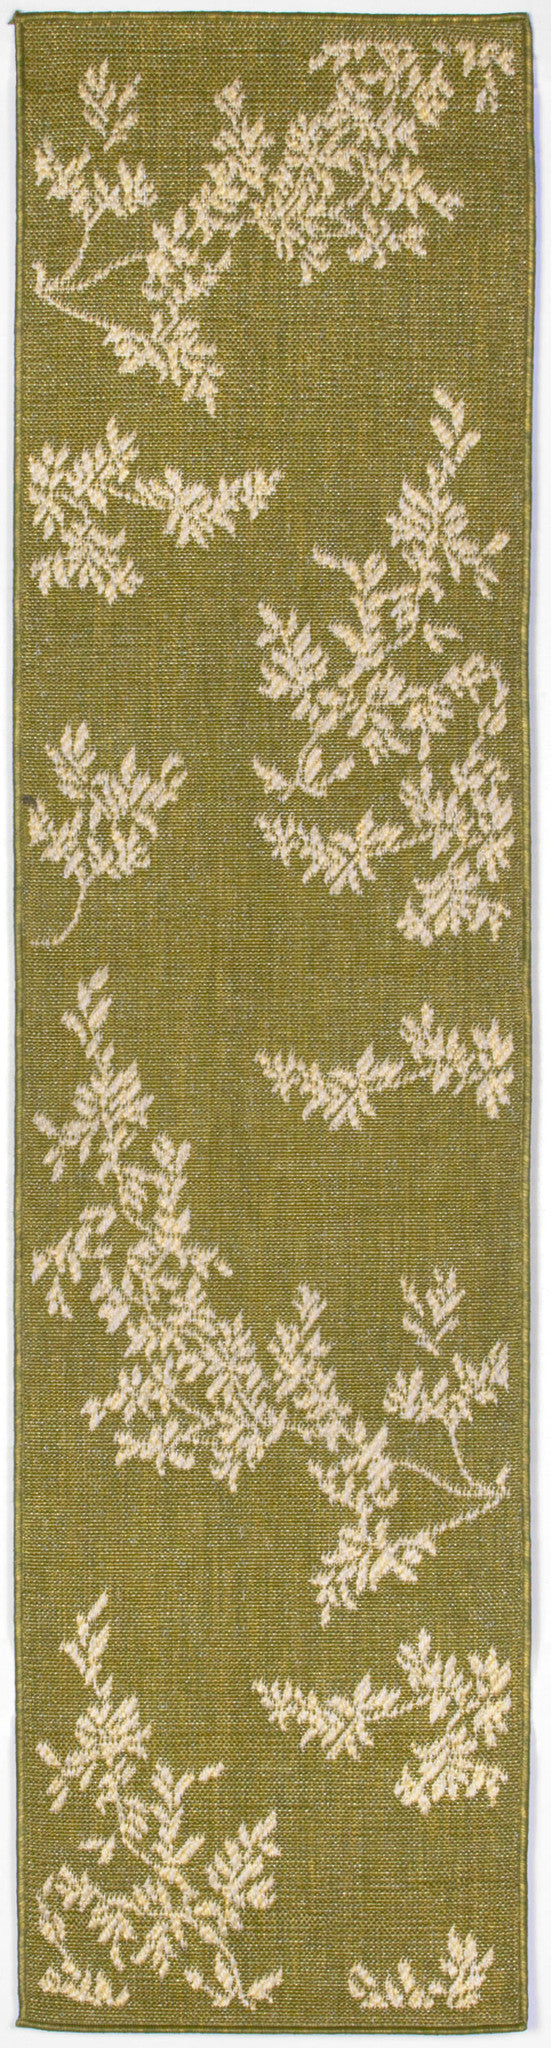 "Vine Green 23"" x 7'6"" Indoor/Outdoor Flatweave Rug"